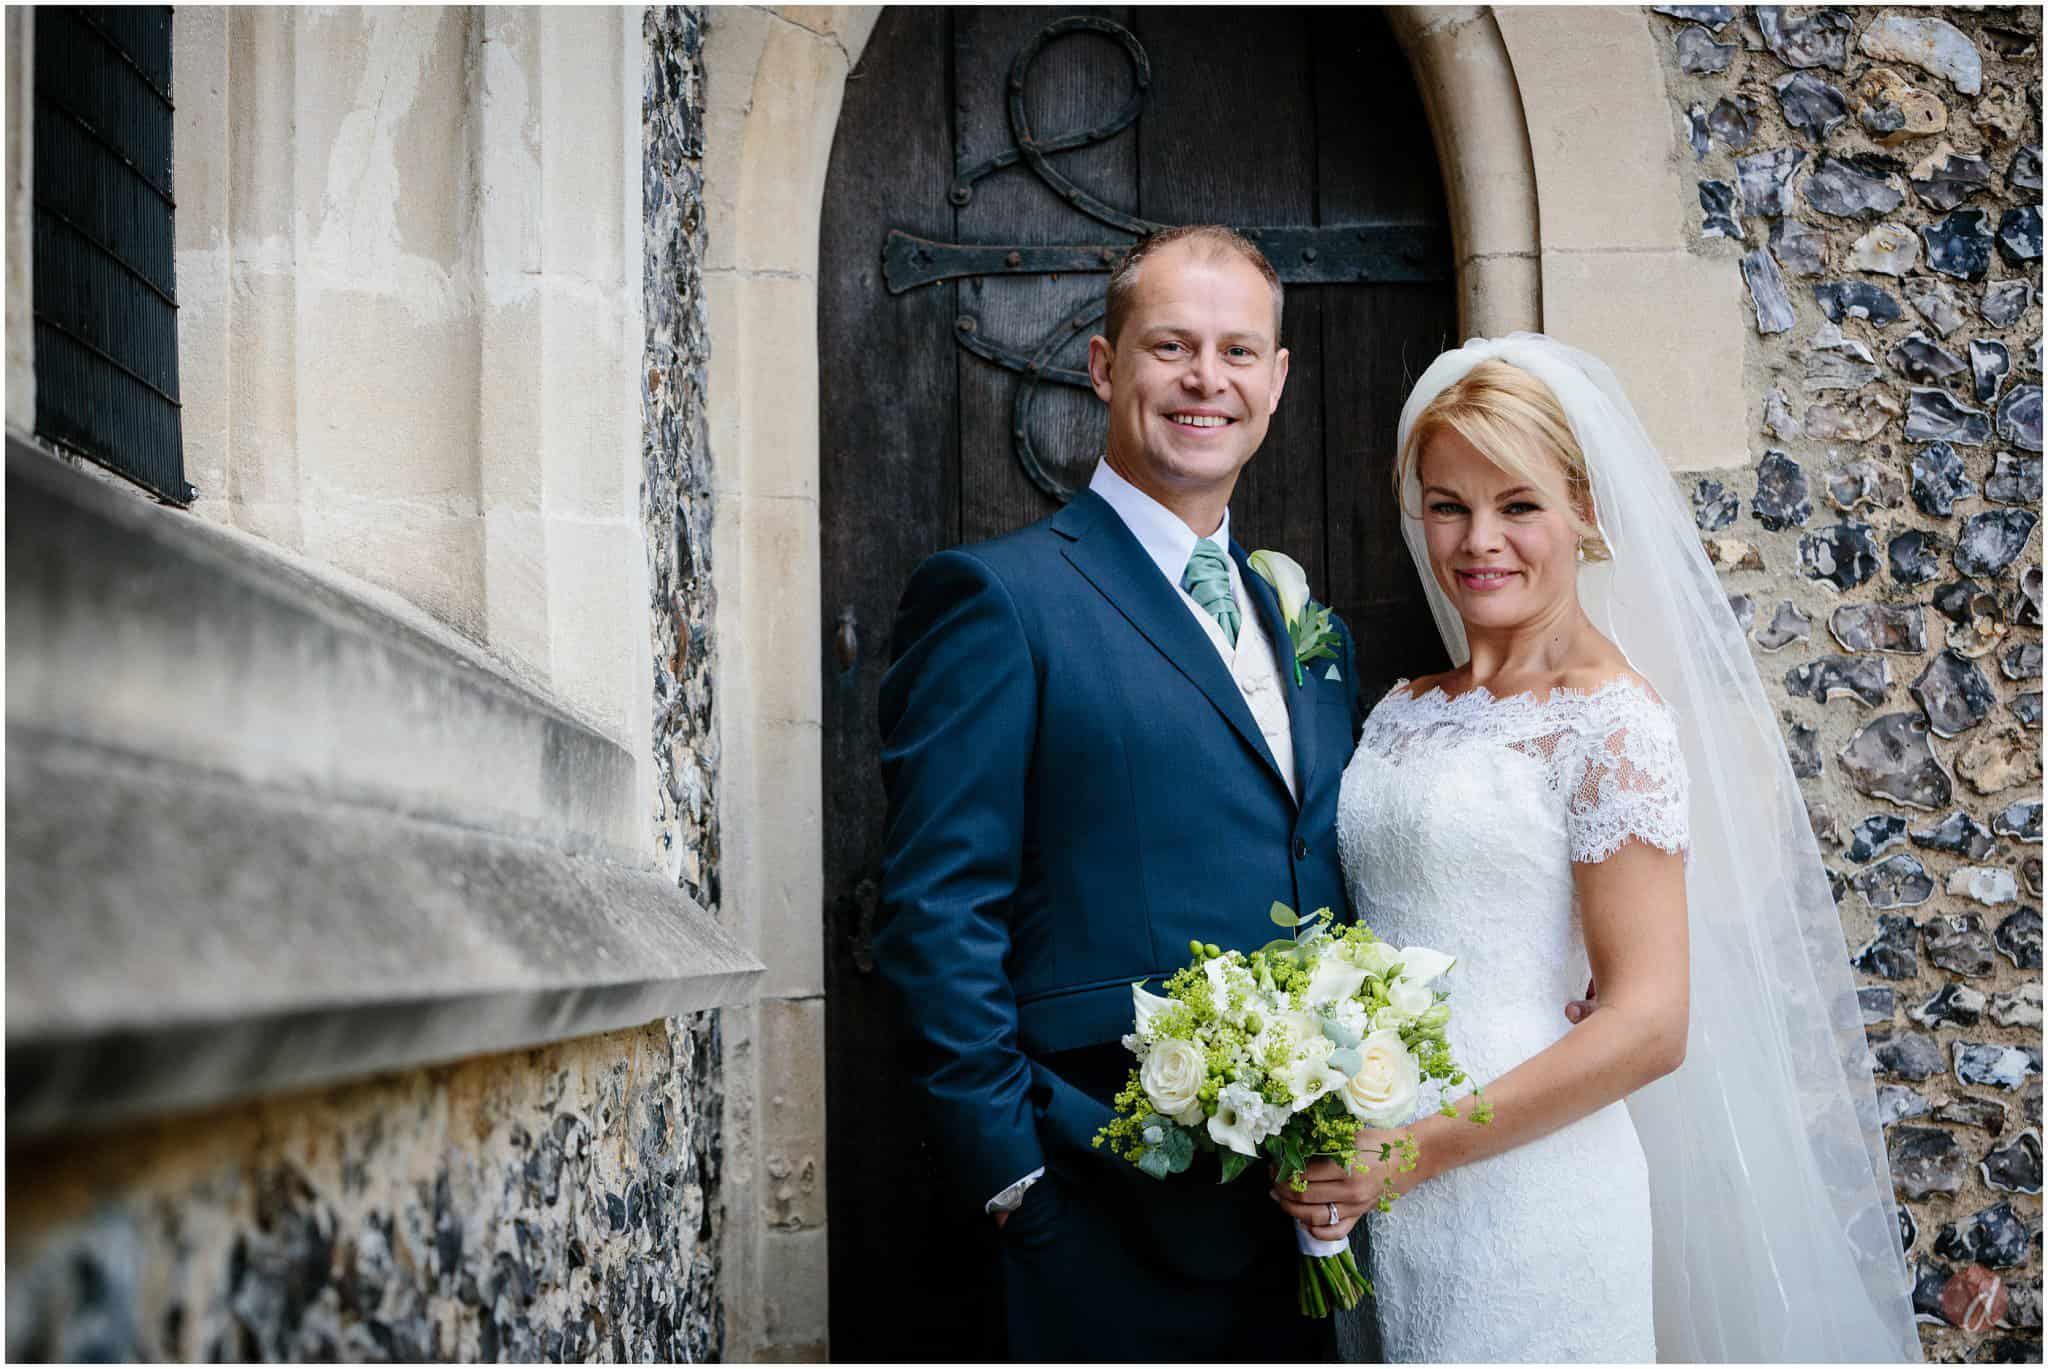 hertfordhire wedding photographer